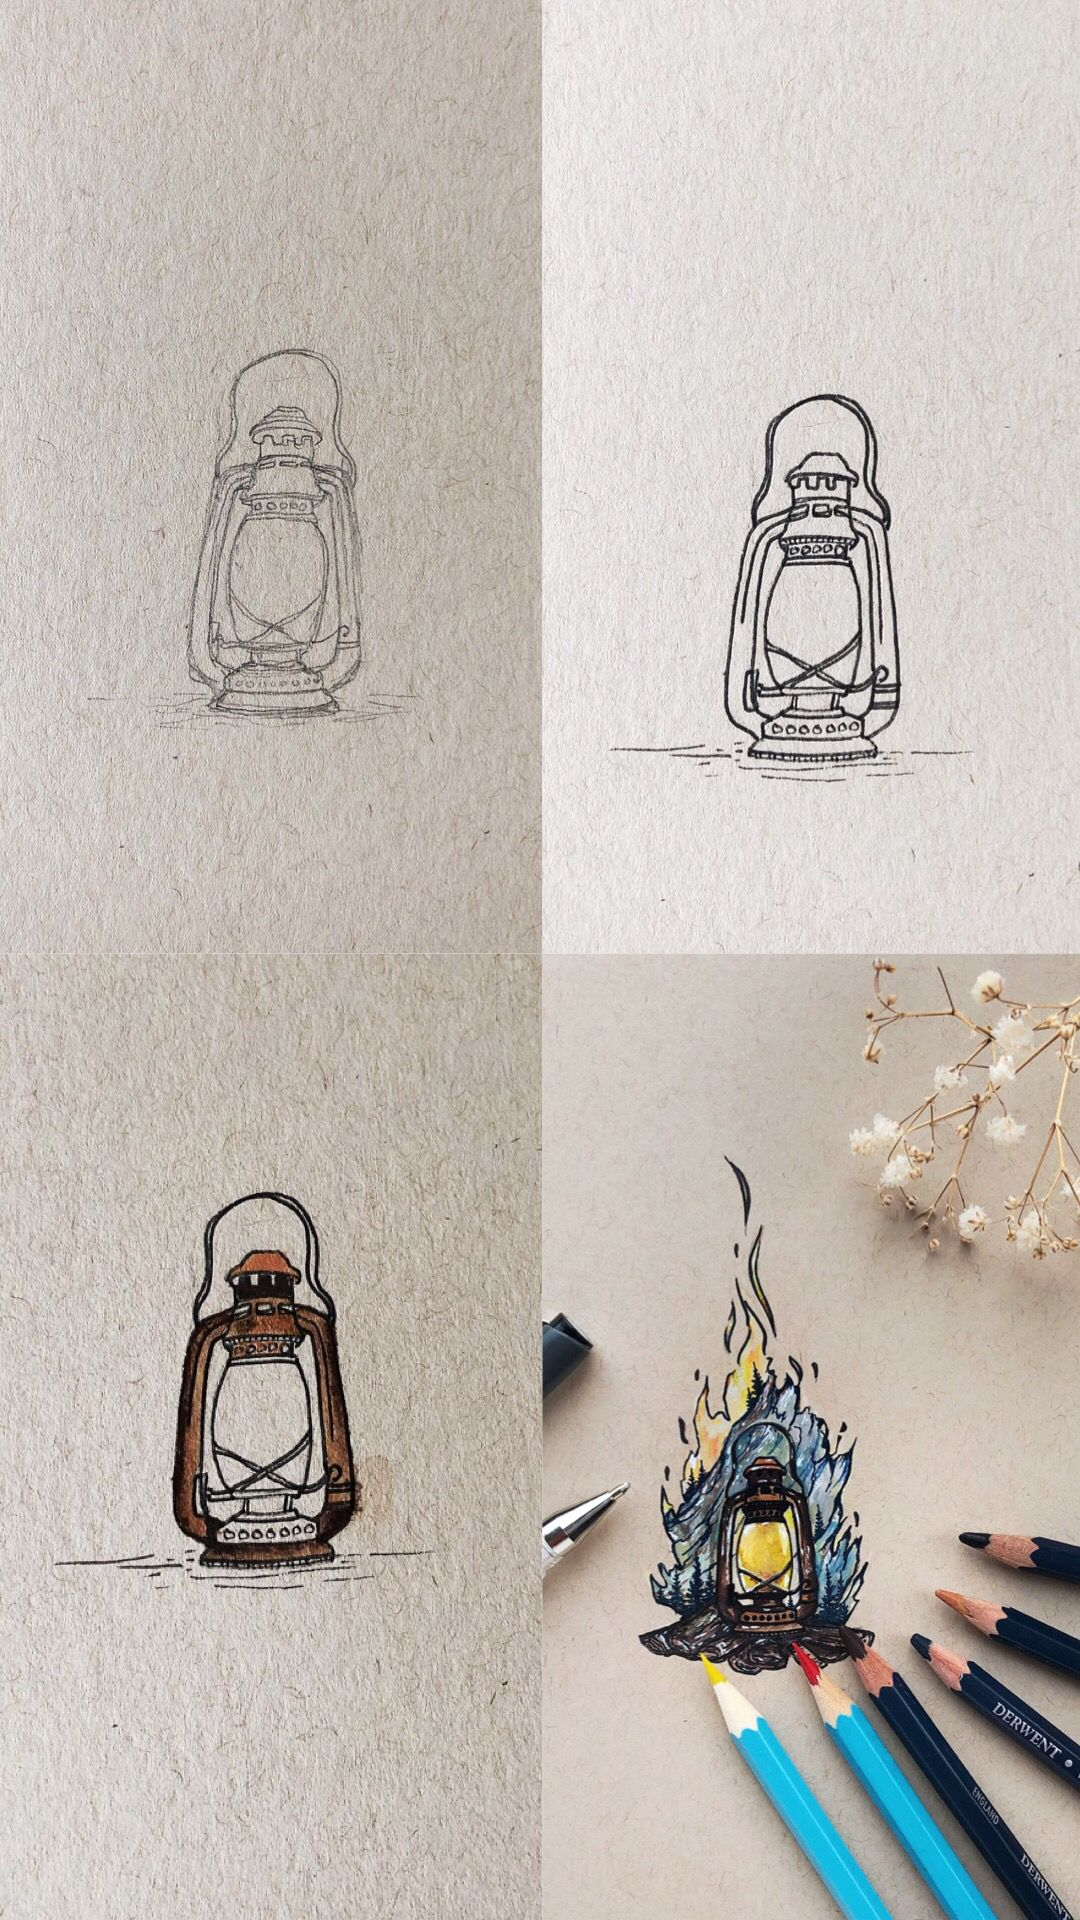 Watercolor Pencils And Ink Lantern Doodle Mini Tutorial With Step